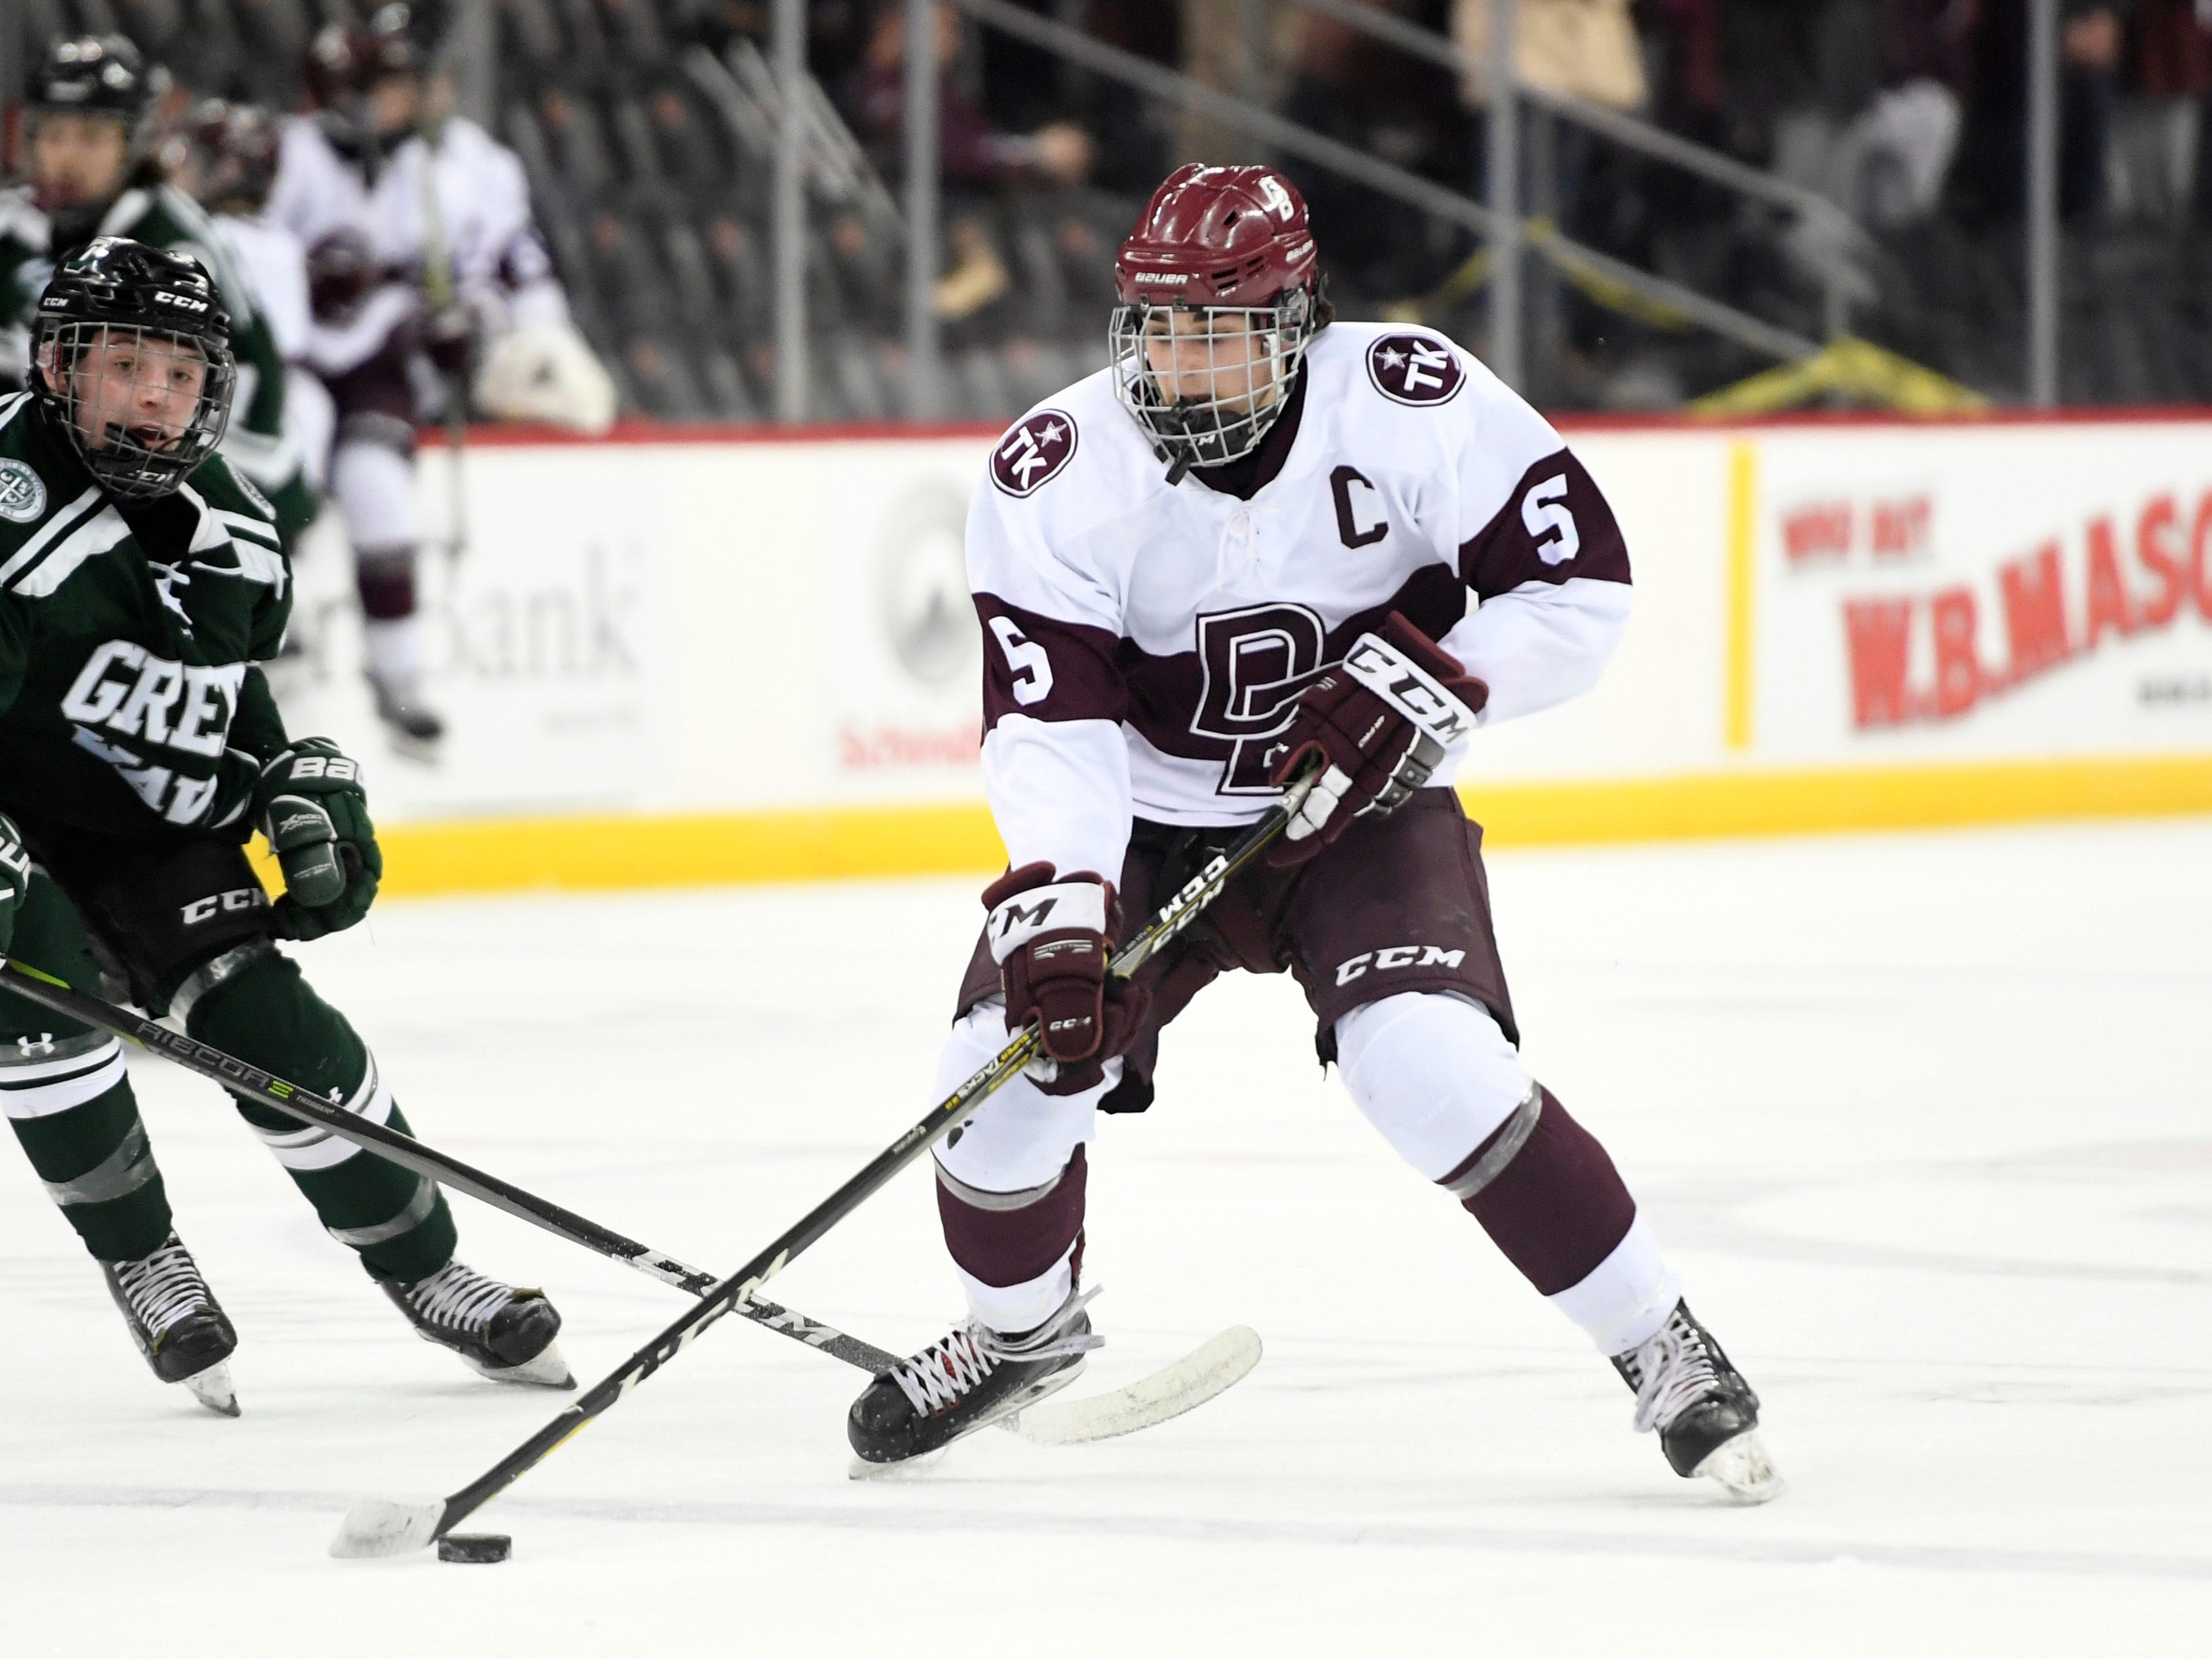 Don Bosco's Thomas Schweighardt (5) in the first period against Delbarton in the Non-Public ice hockey final at the Prudential Center on Monday, March 4, 2019, in Newark.